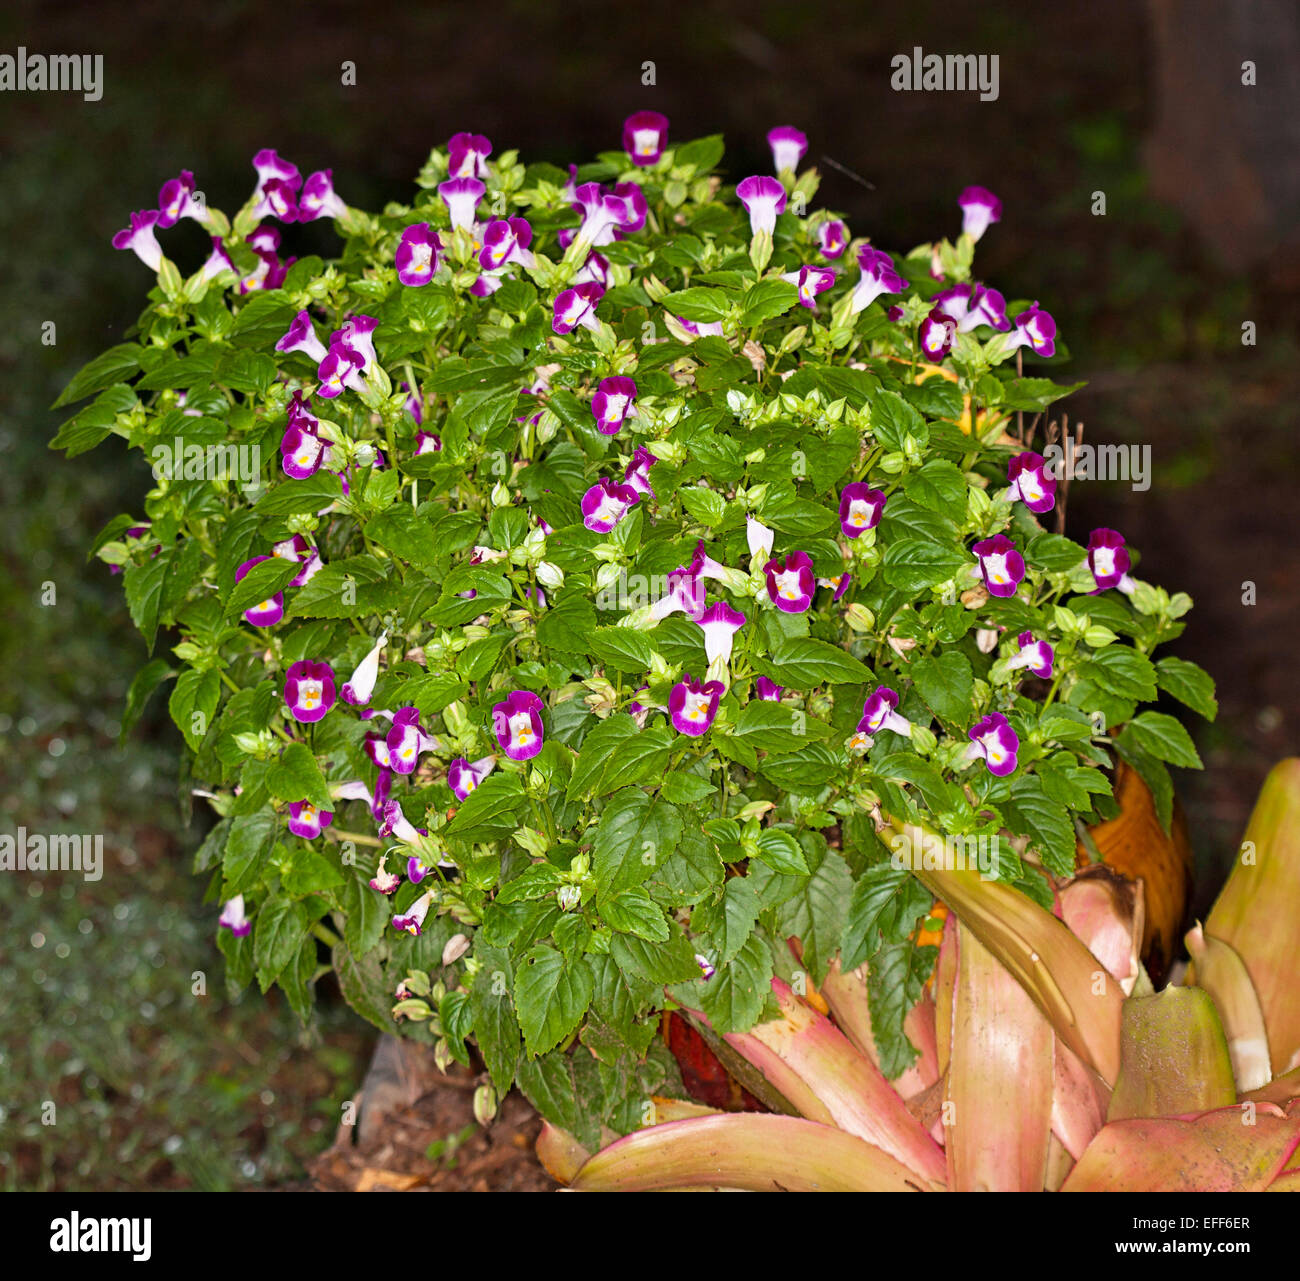 Cluster of bright purple magenta and white flowers green leaves cluster of bright purple magenta and white flowers green leaves of torenia an annual garden plant against dark background mightylinksfo